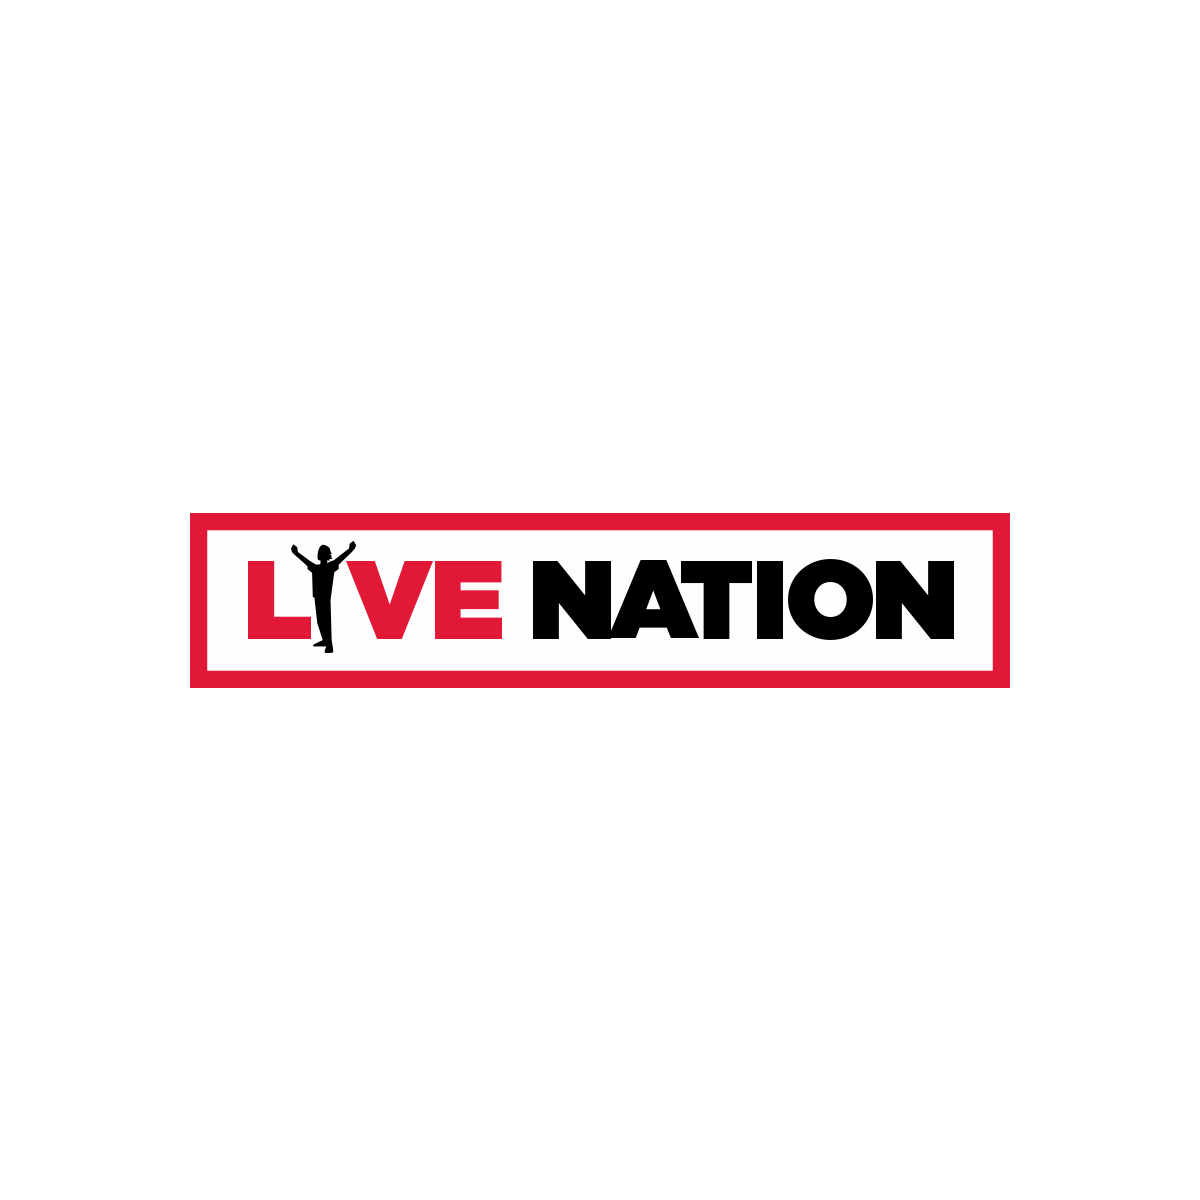 Cover image for Why the SVOD Boom Will Benefit Live Nation